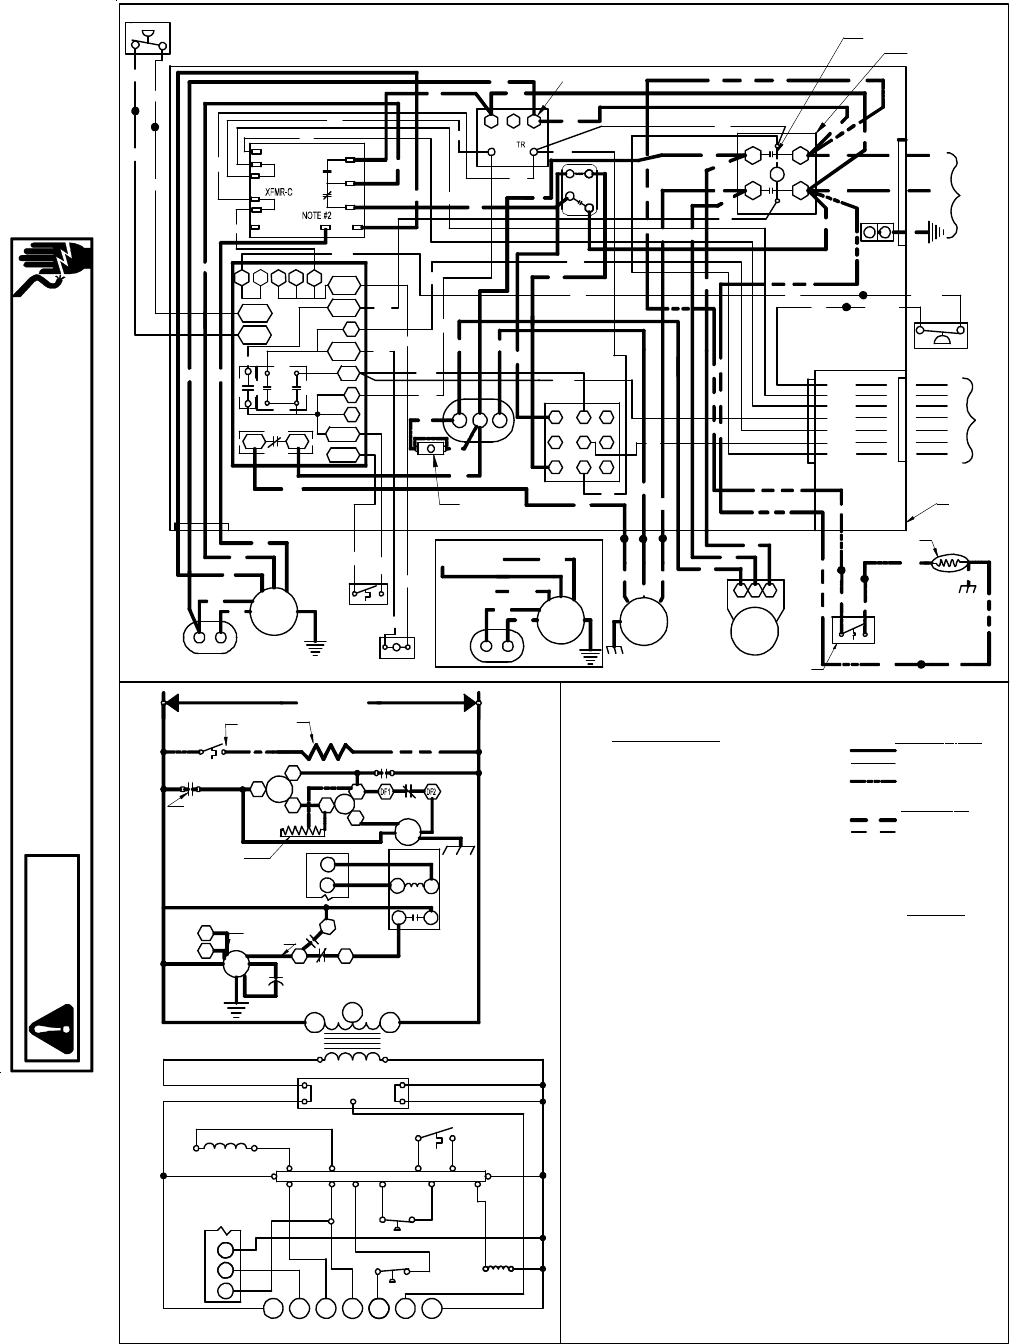 heat pump wiring diagram schematic gph1342m41ca